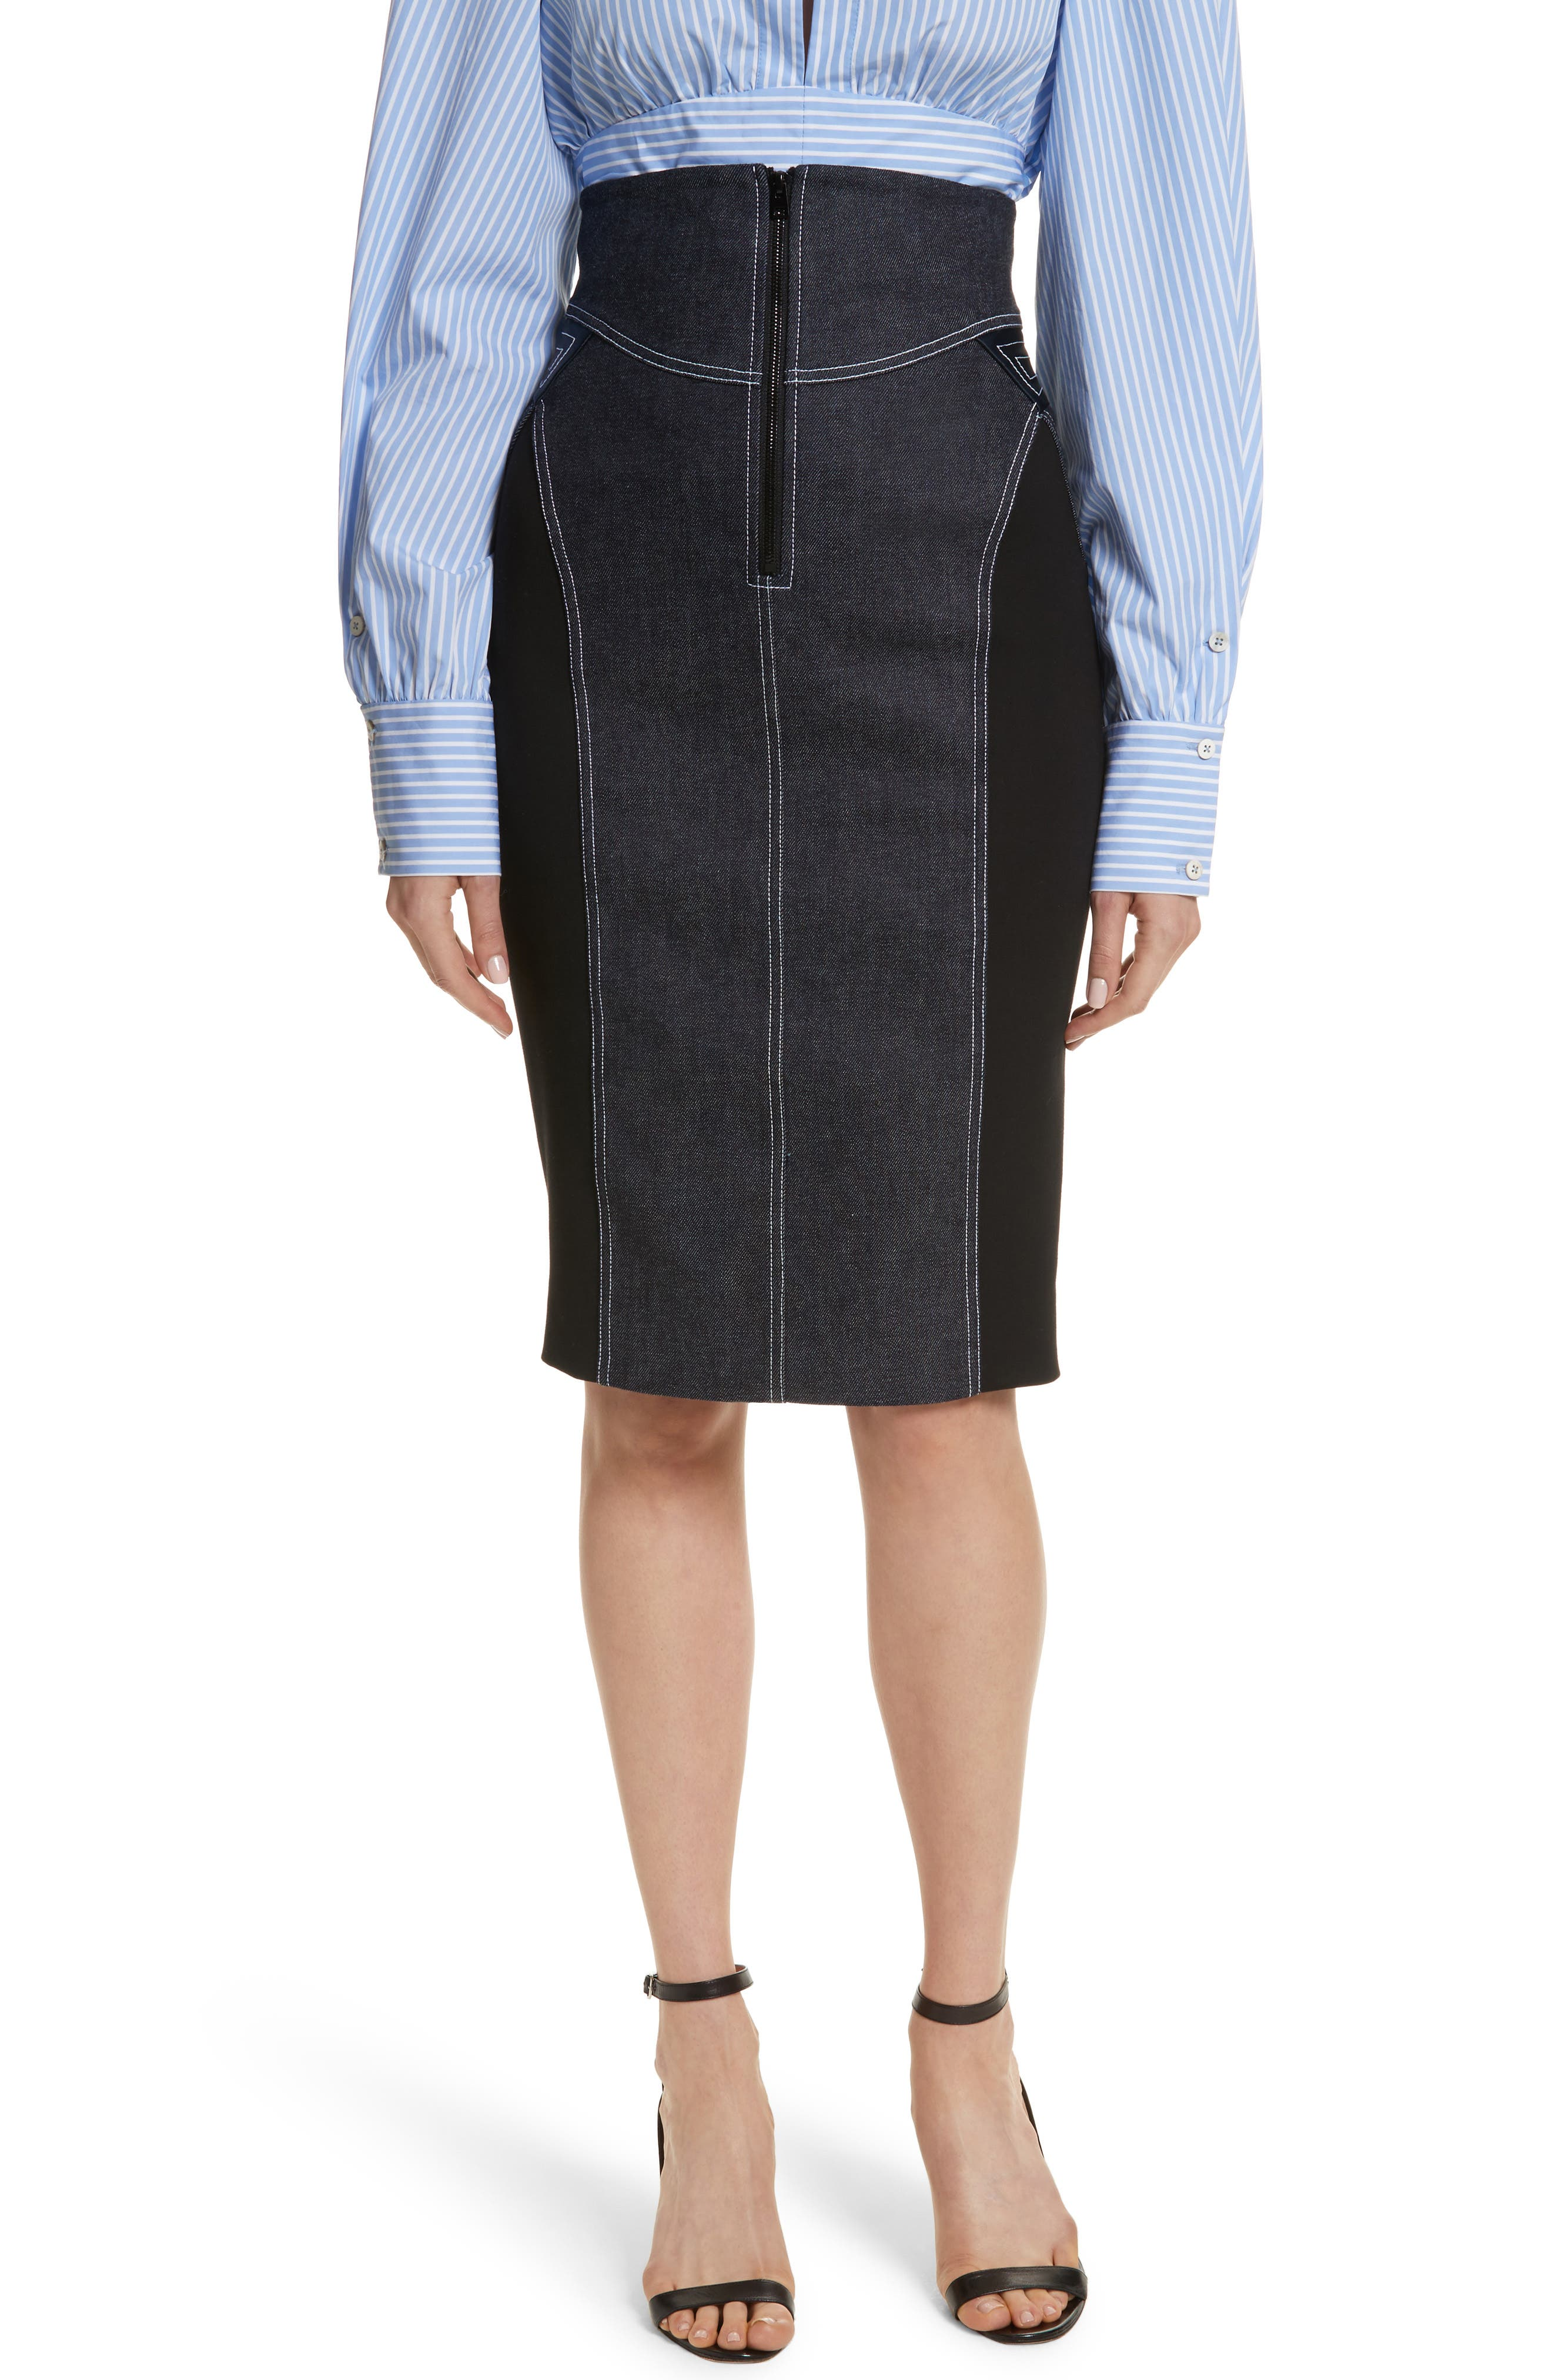 Diane von Furstenberg Denim Pencil Skirt,                             Main thumbnail 1, color,                             Indigo/ Black/ Alexander Navy